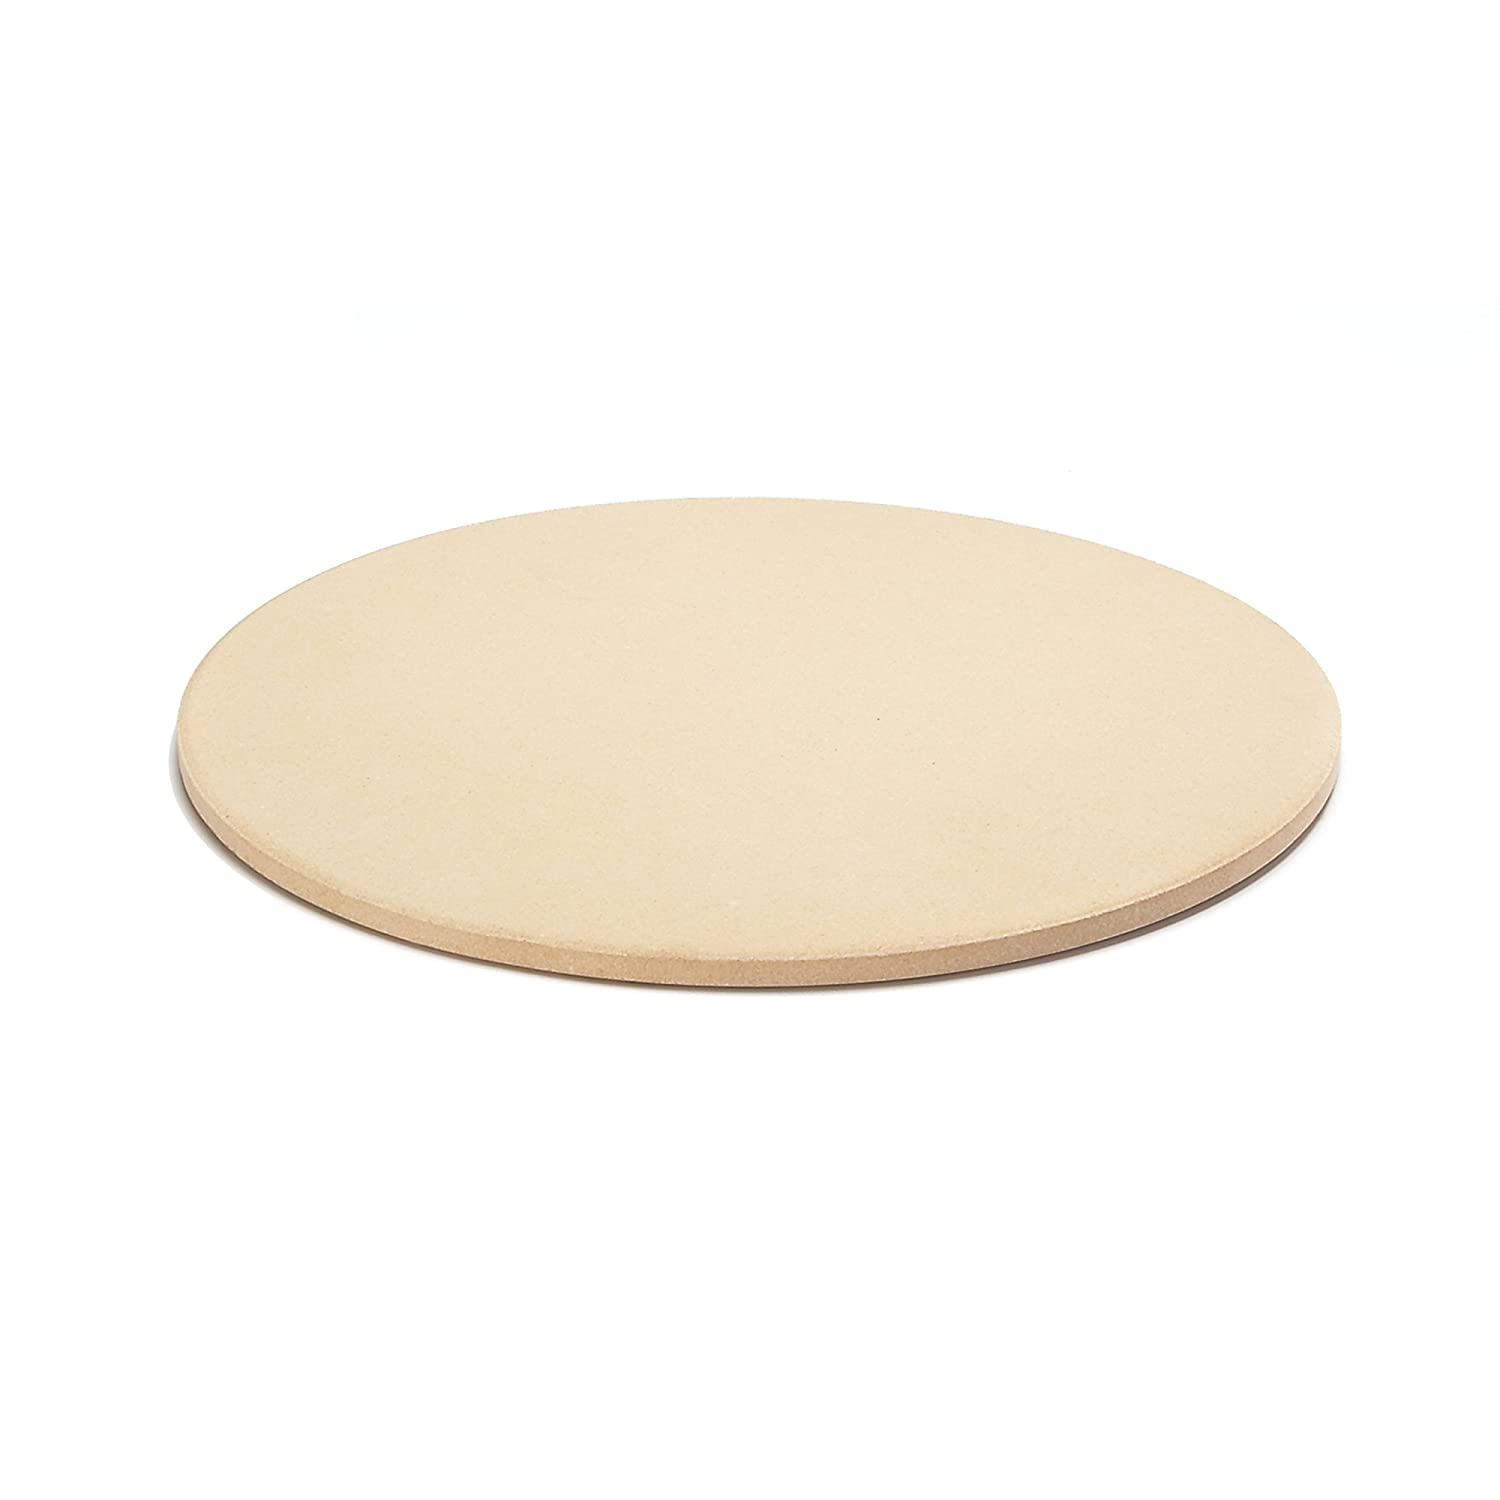 Outset QZ44 Pizza Grill Stone, 13-Inch